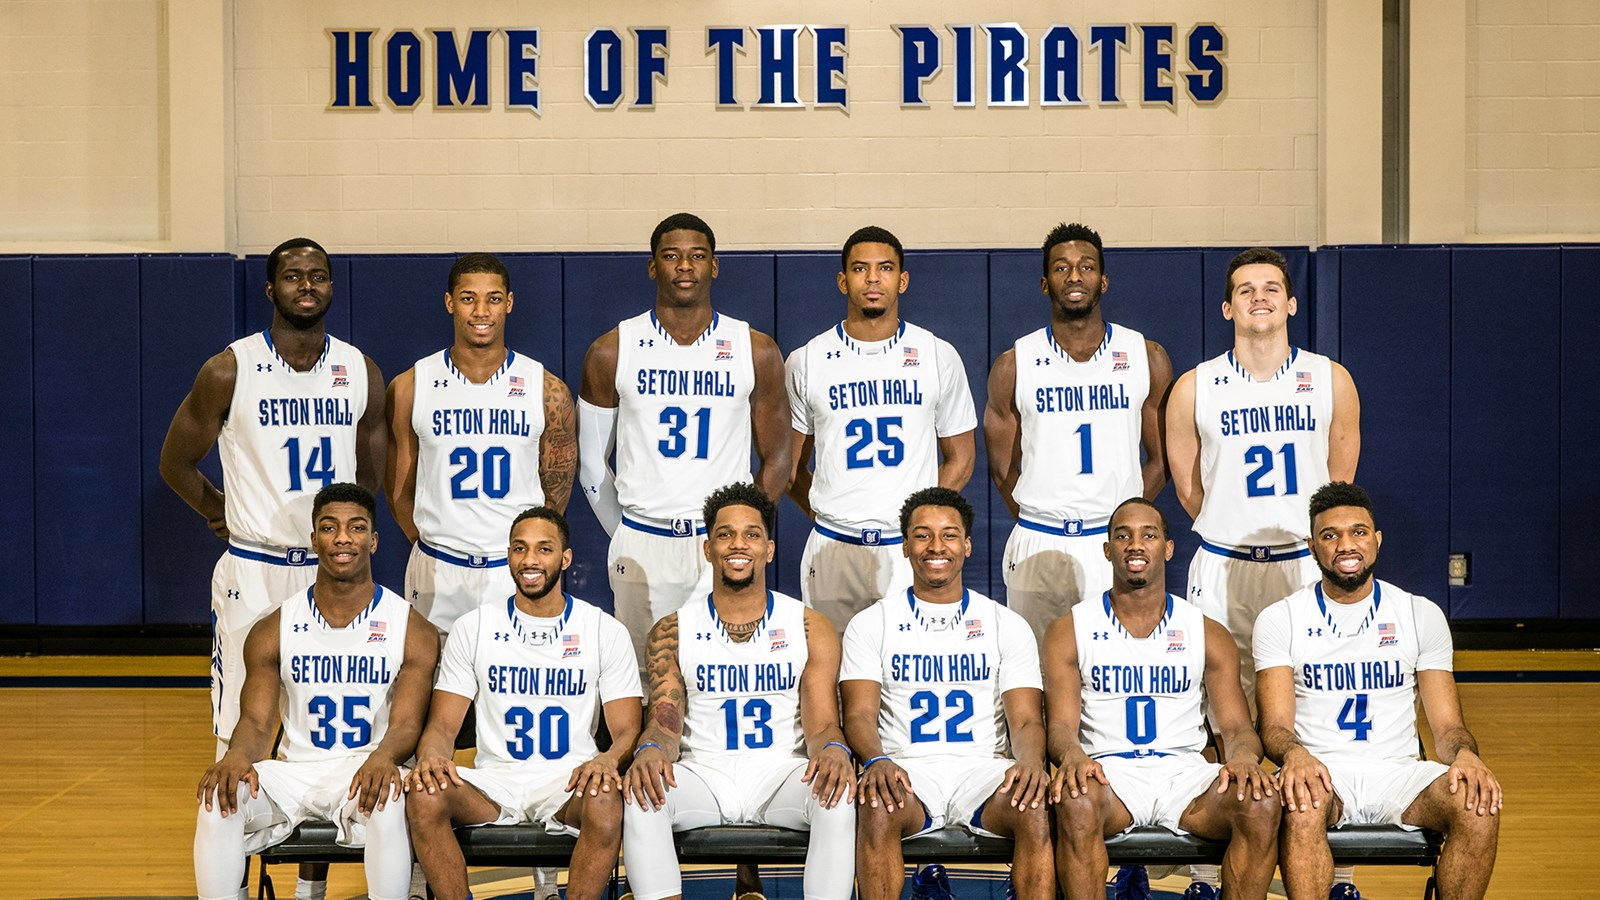 2016-17 men's basketball roster - seton hall university athletics